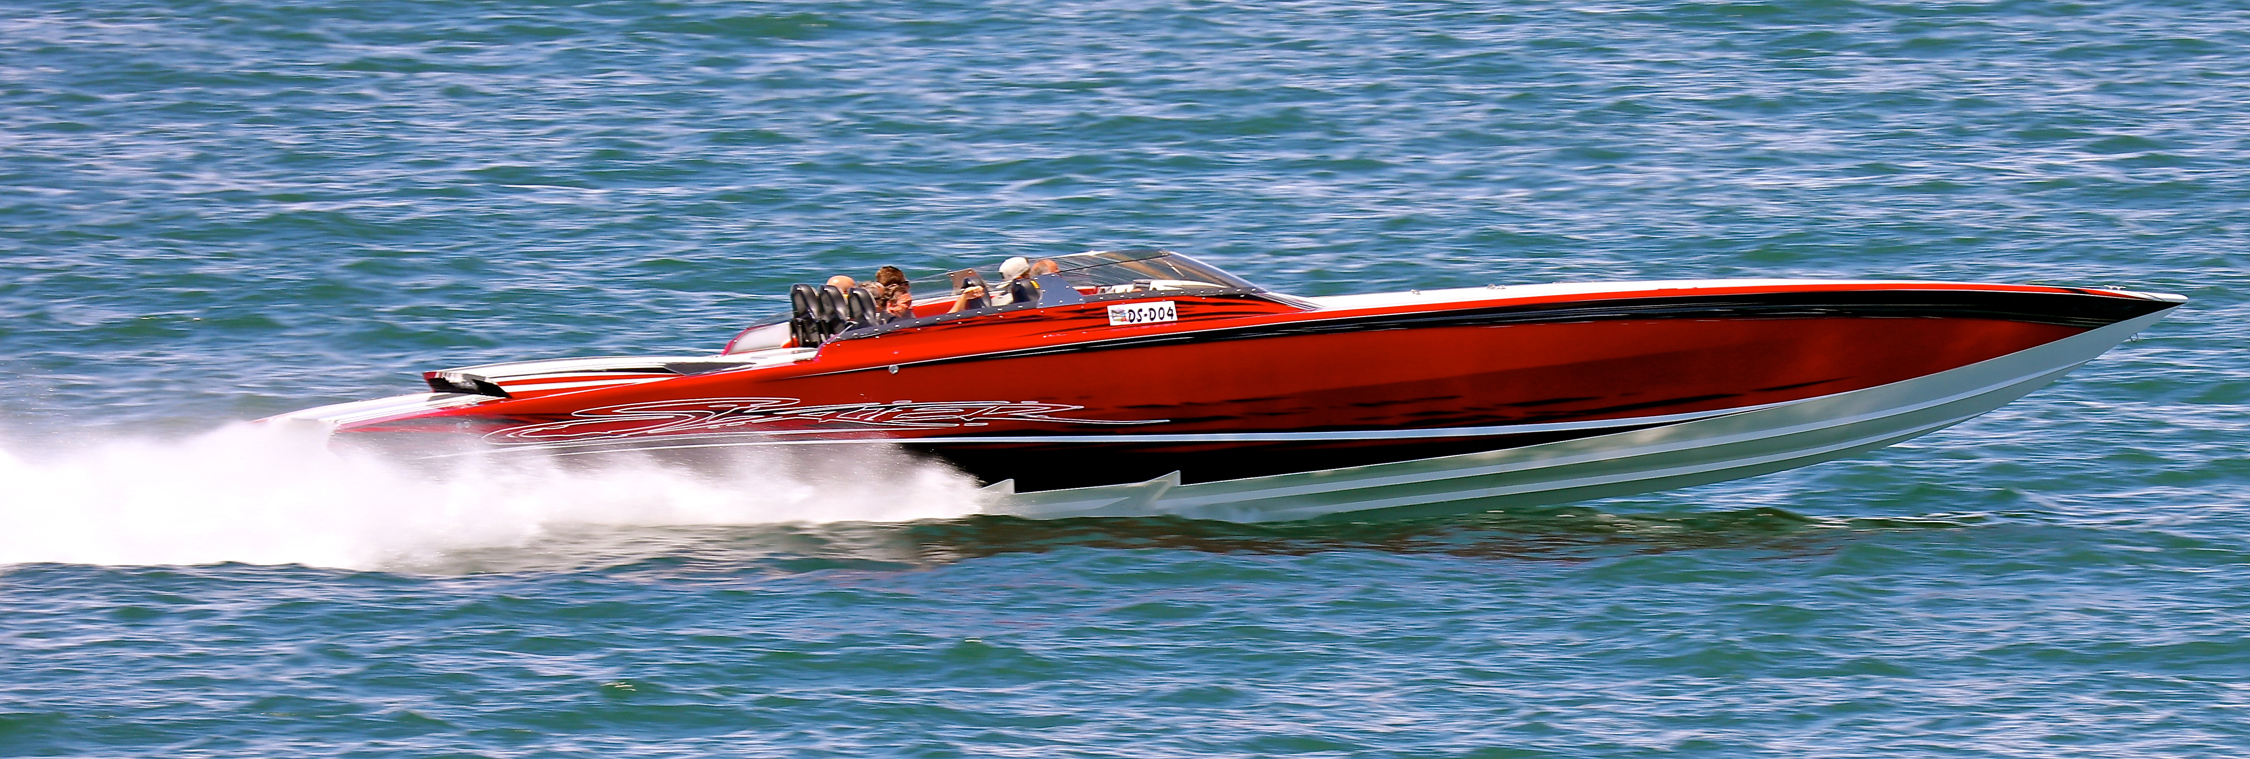 Owning a beautiful high-performance powerboat such as this Skater V-bottom doesn't mean you have to go without a VHF radio. At the very least, a handheld VHF unit is an option. Photo by Pete Boden/Shoot 2 Thrill Pix. (https://www.facebook.com/Shoot-2-Thrill-Pix-130528070292399/?fref=ts)